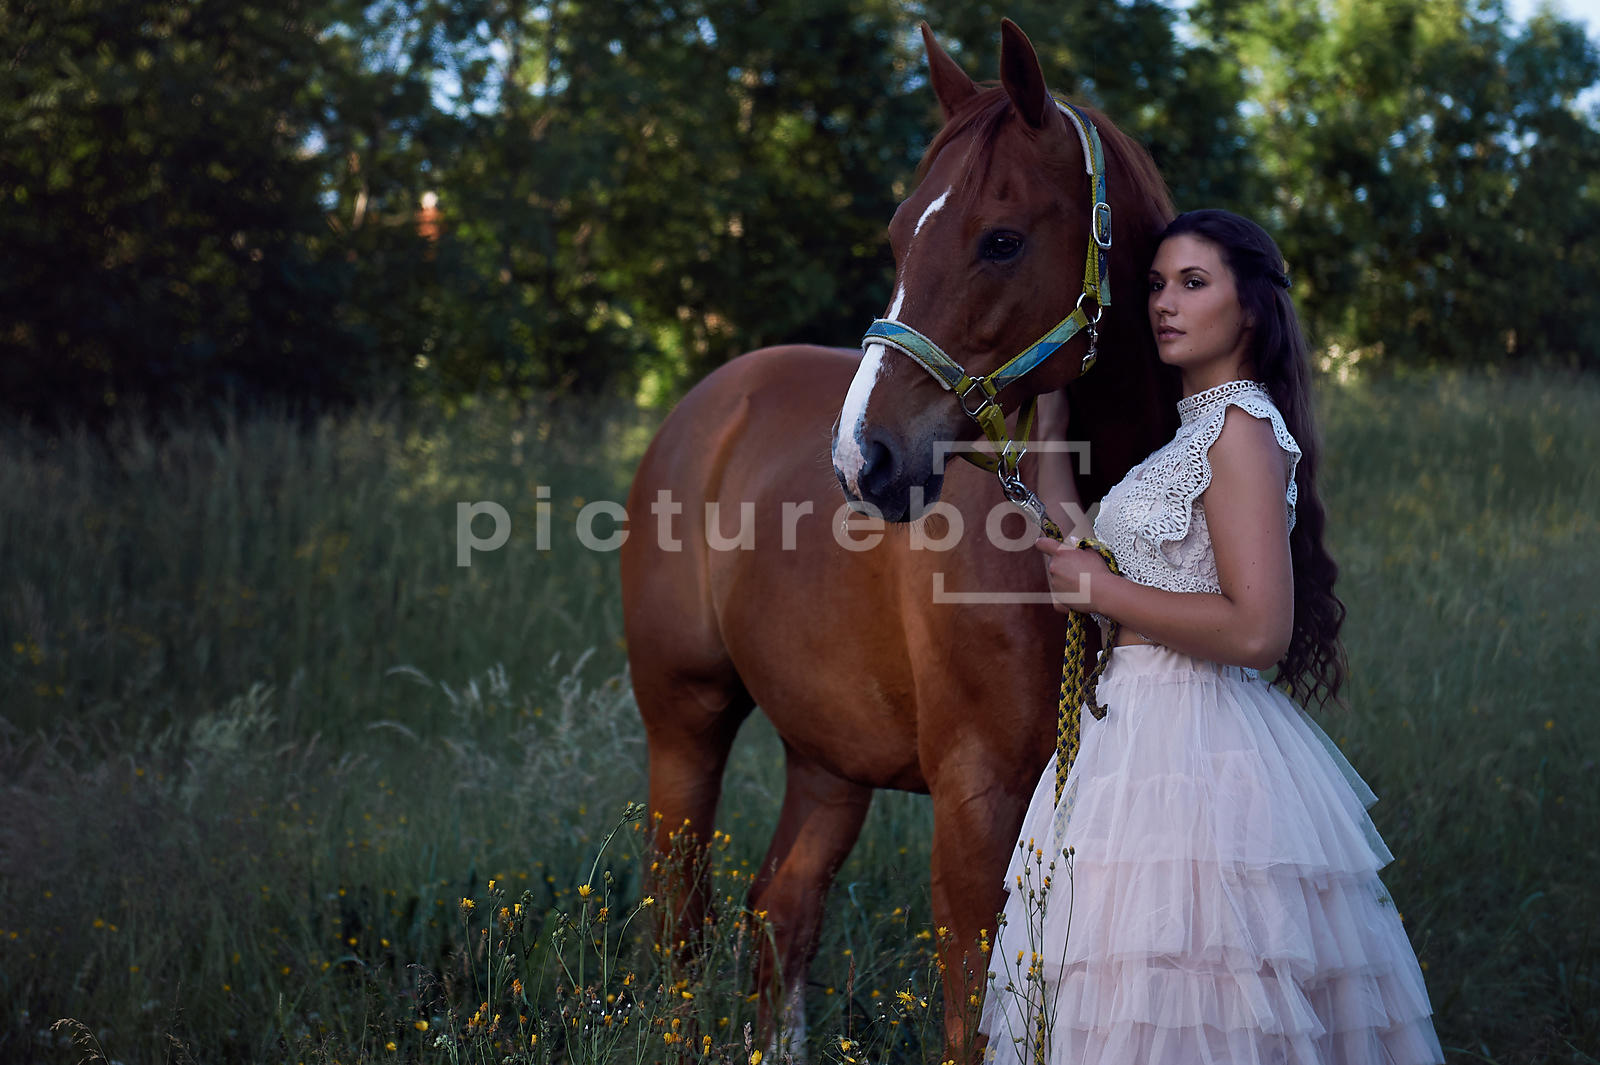 A woman in a white dress, holding the reins of a horse, in a meadow.